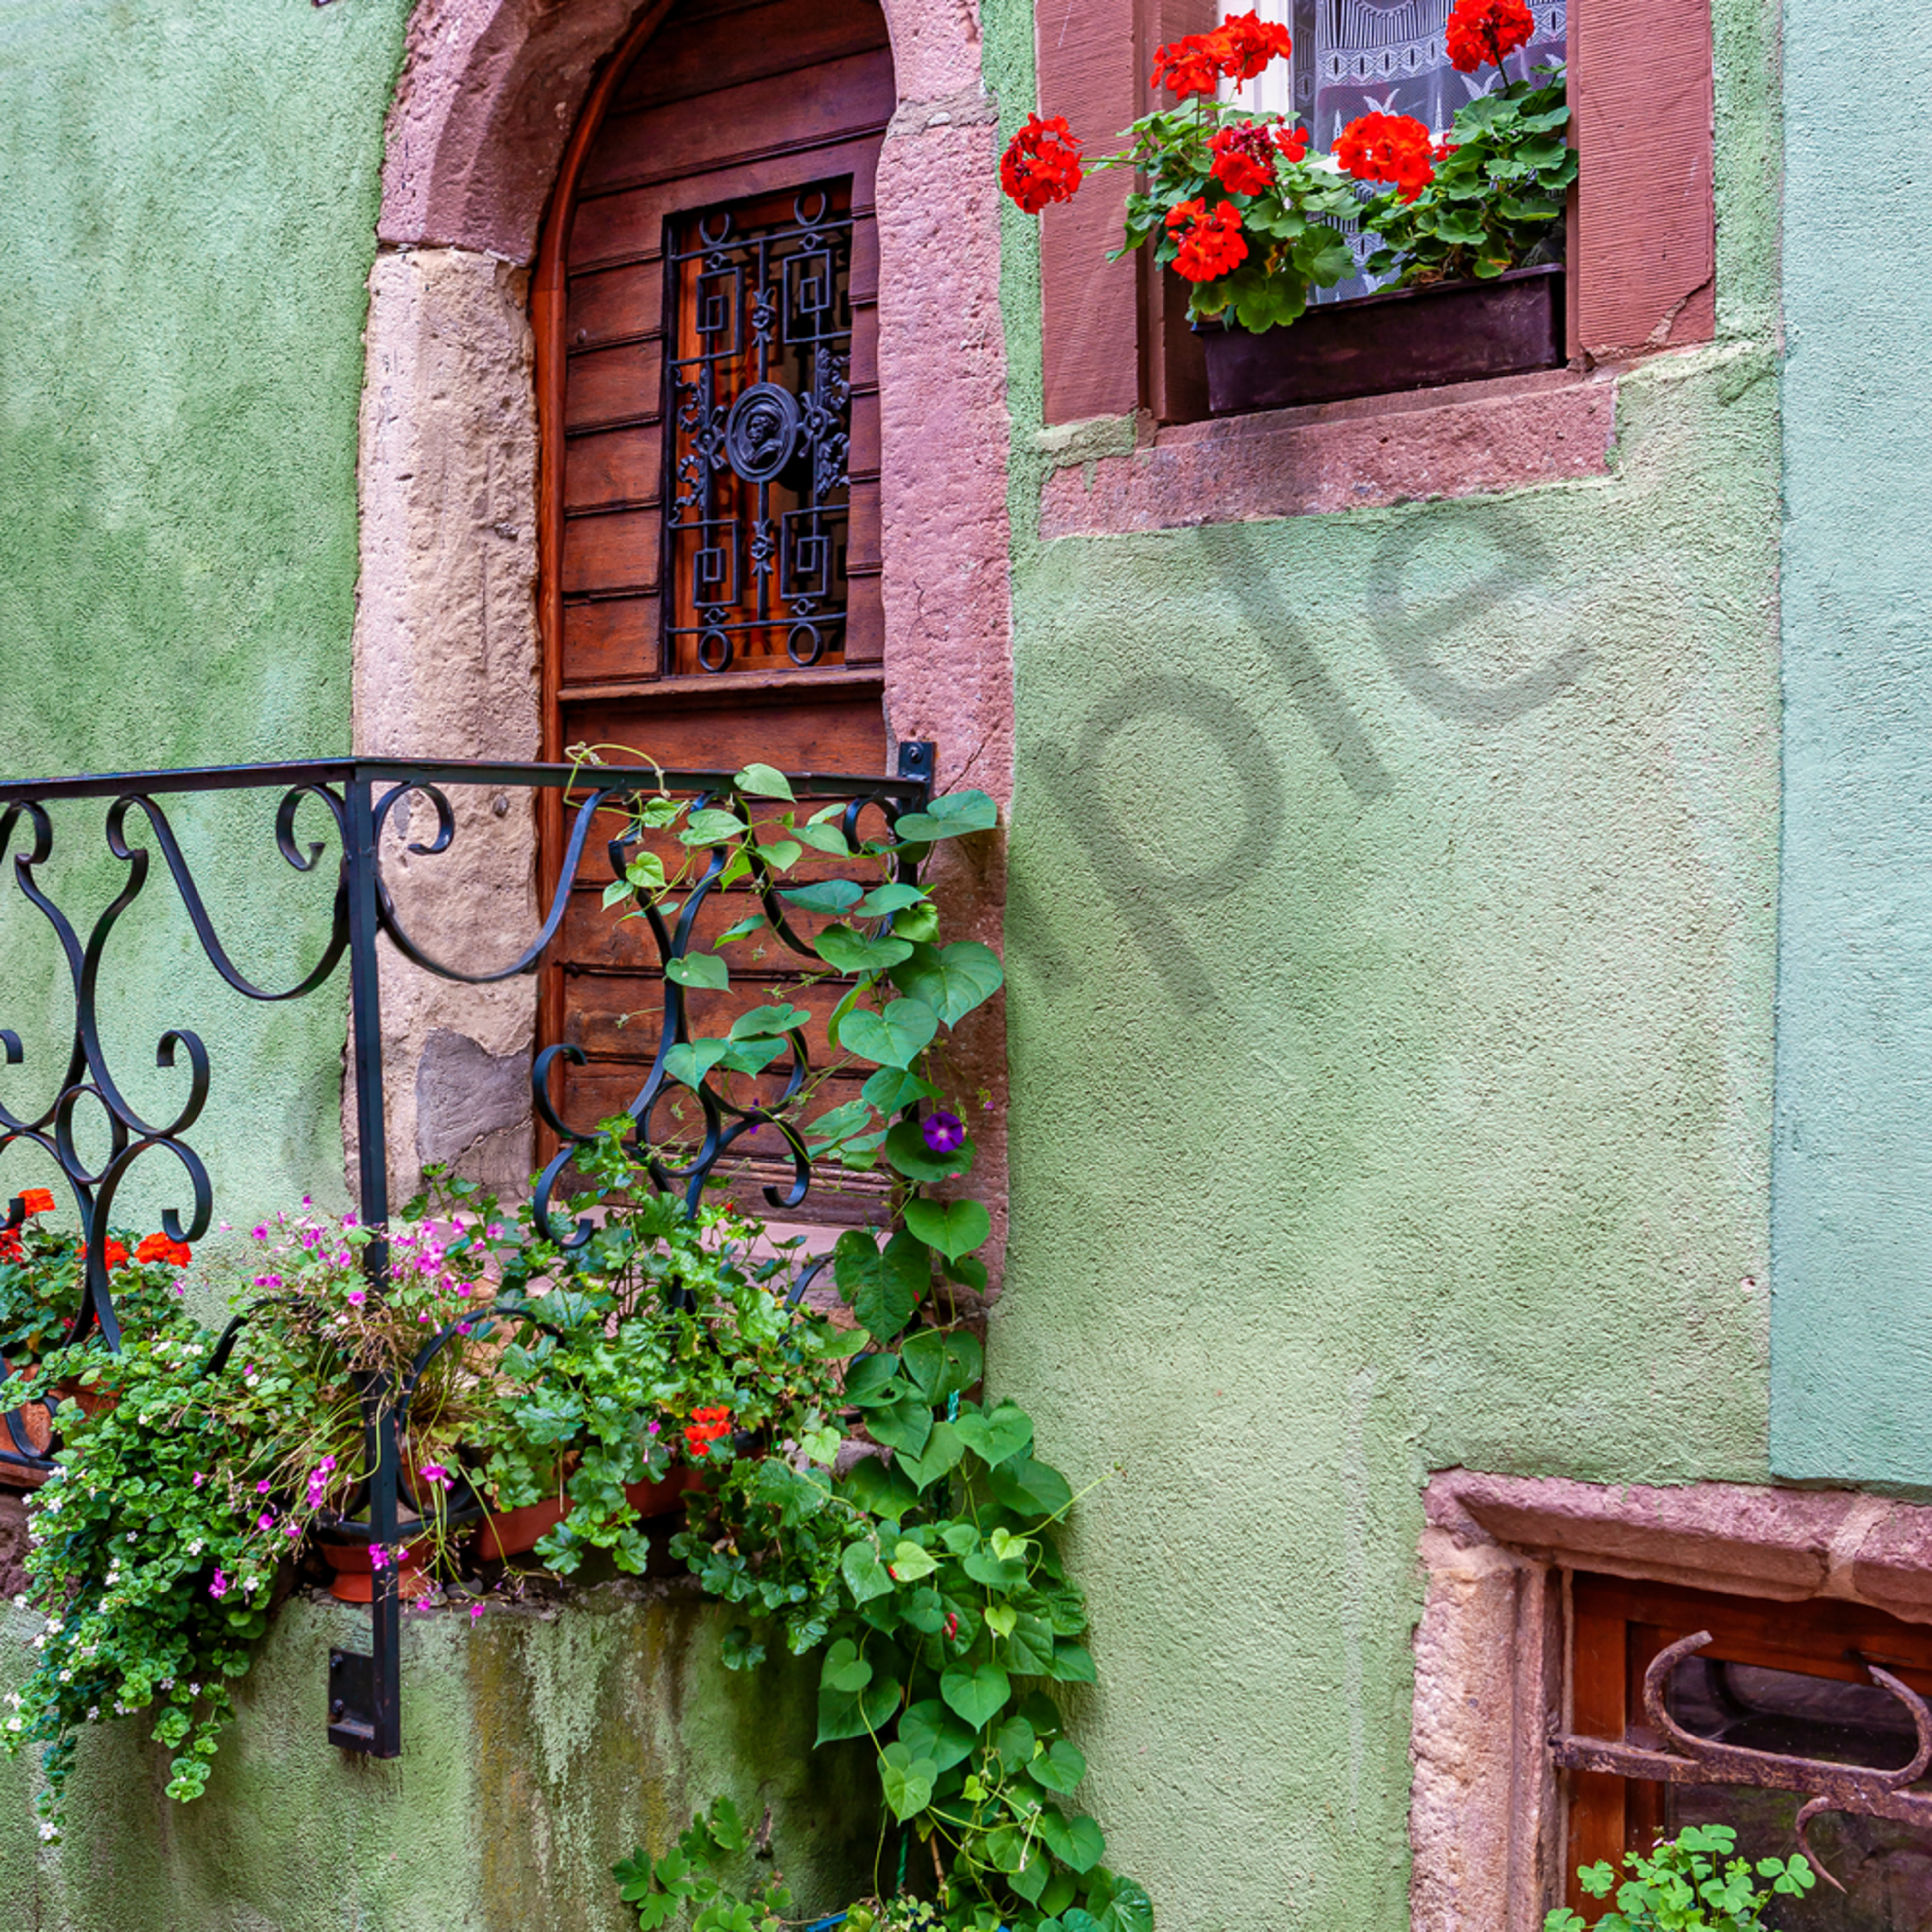 Pink door with flowers riquewhir france lrxai3